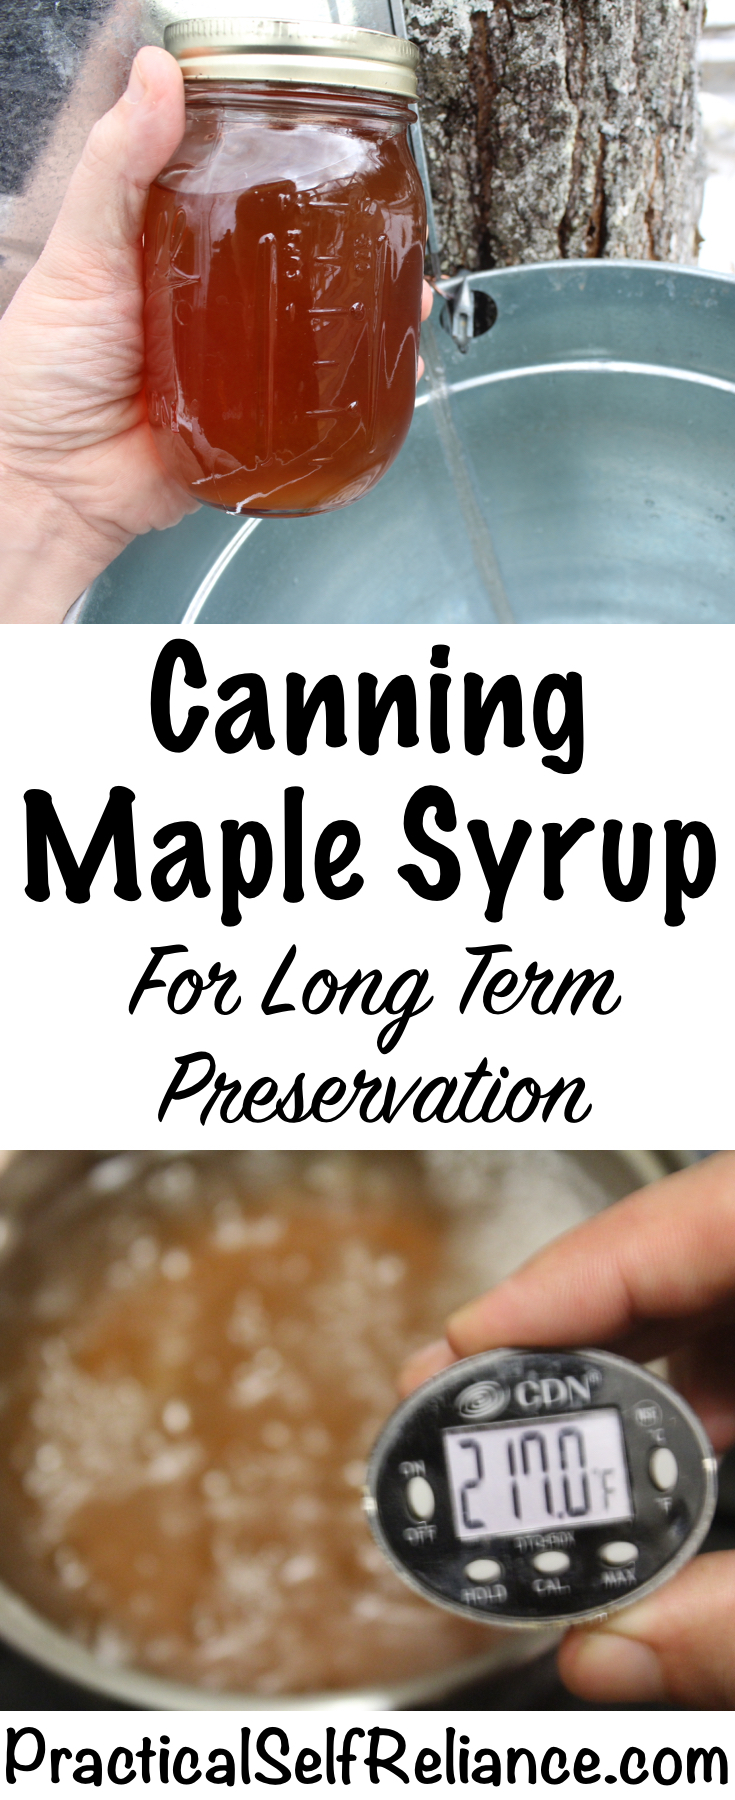 Canning Maple Syrup for Long Term Preservation